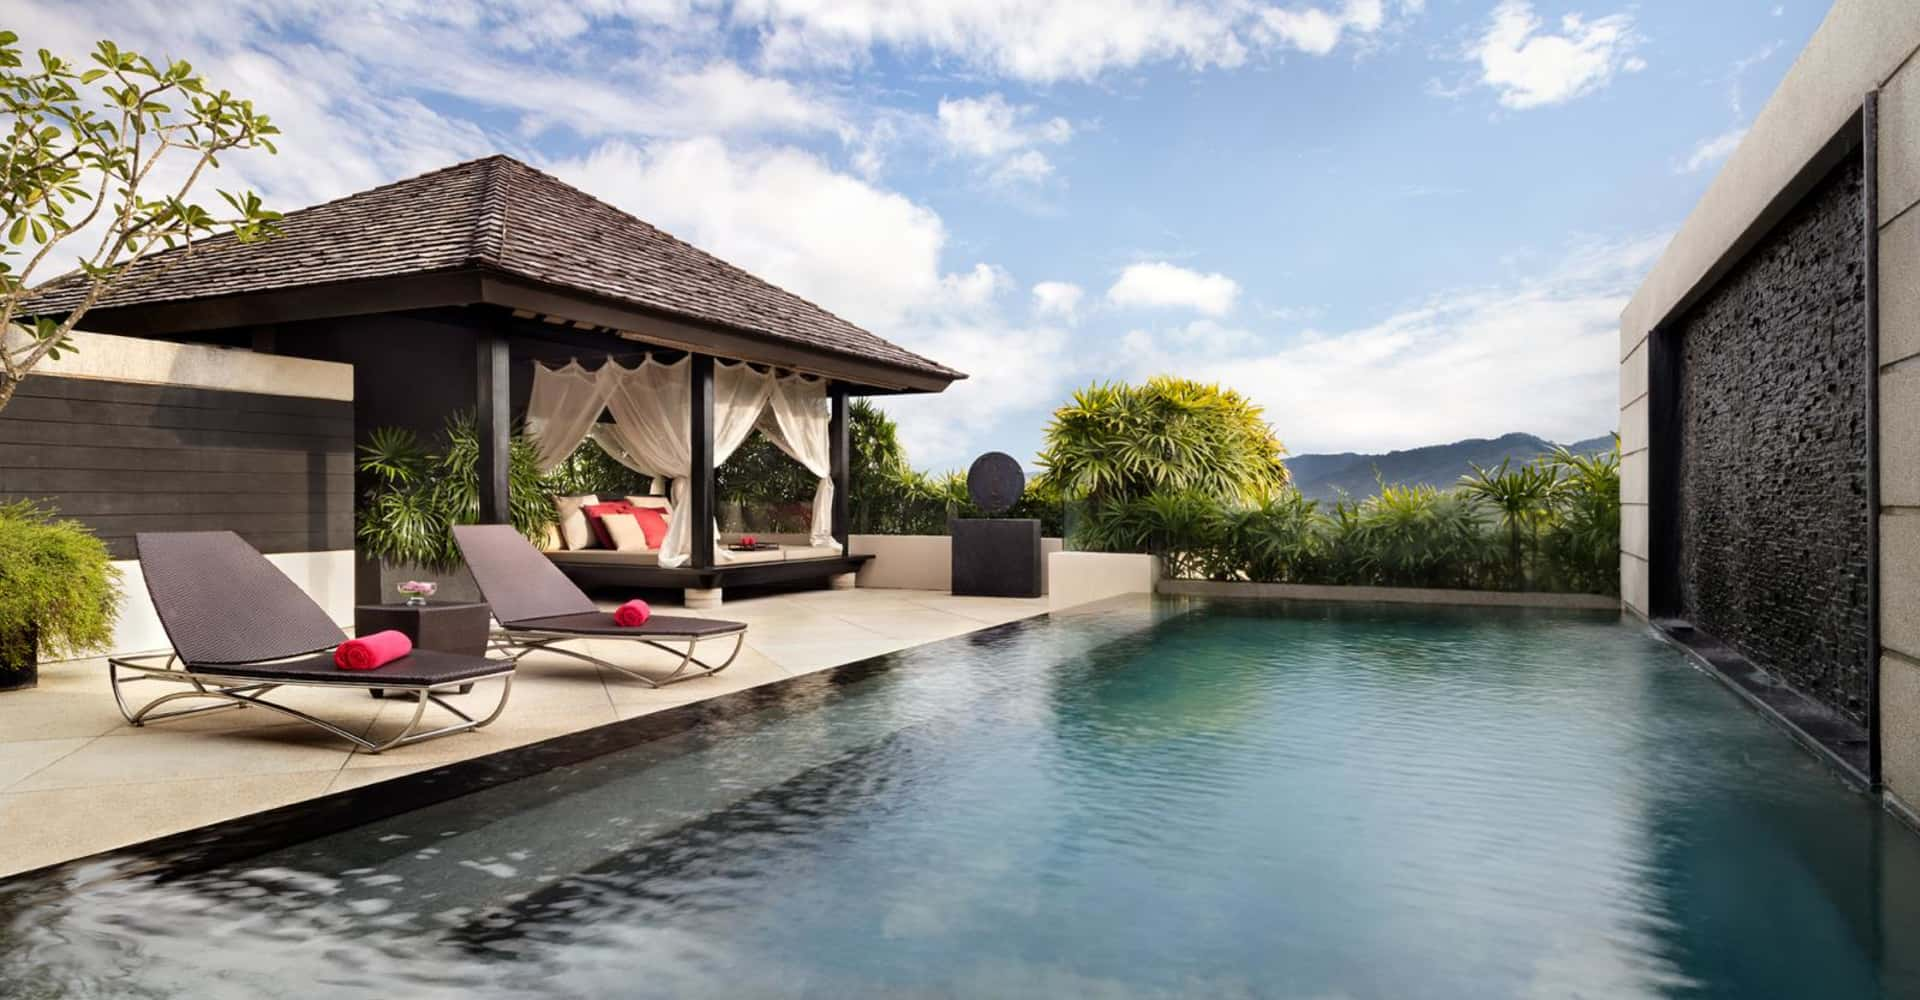 Spa & Pool Pavilion With Daily Massage - The Pavilions Phuket